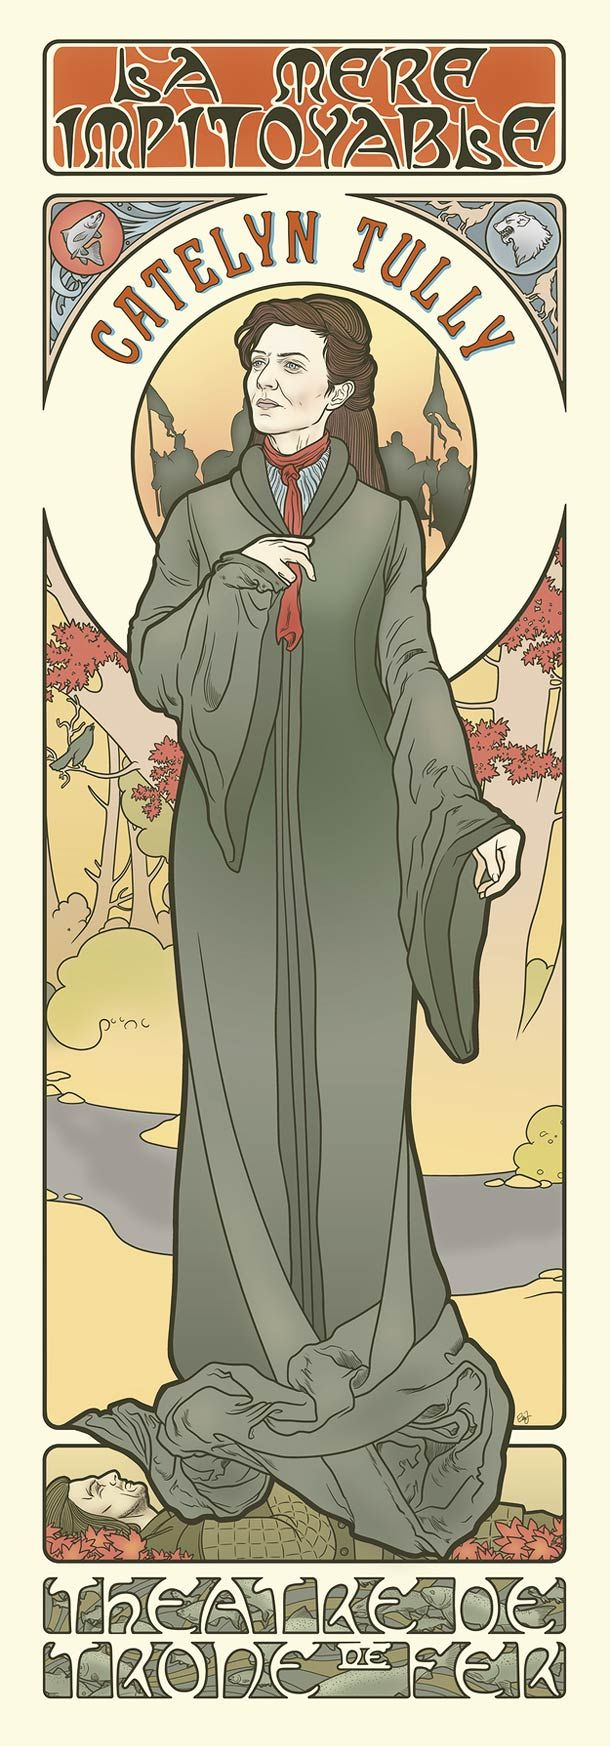 Game of Thrones, Catelyn Tully. Elin Jonsson's Game of Thrones art nouveau illustrations in the style of Alphonse Mucha